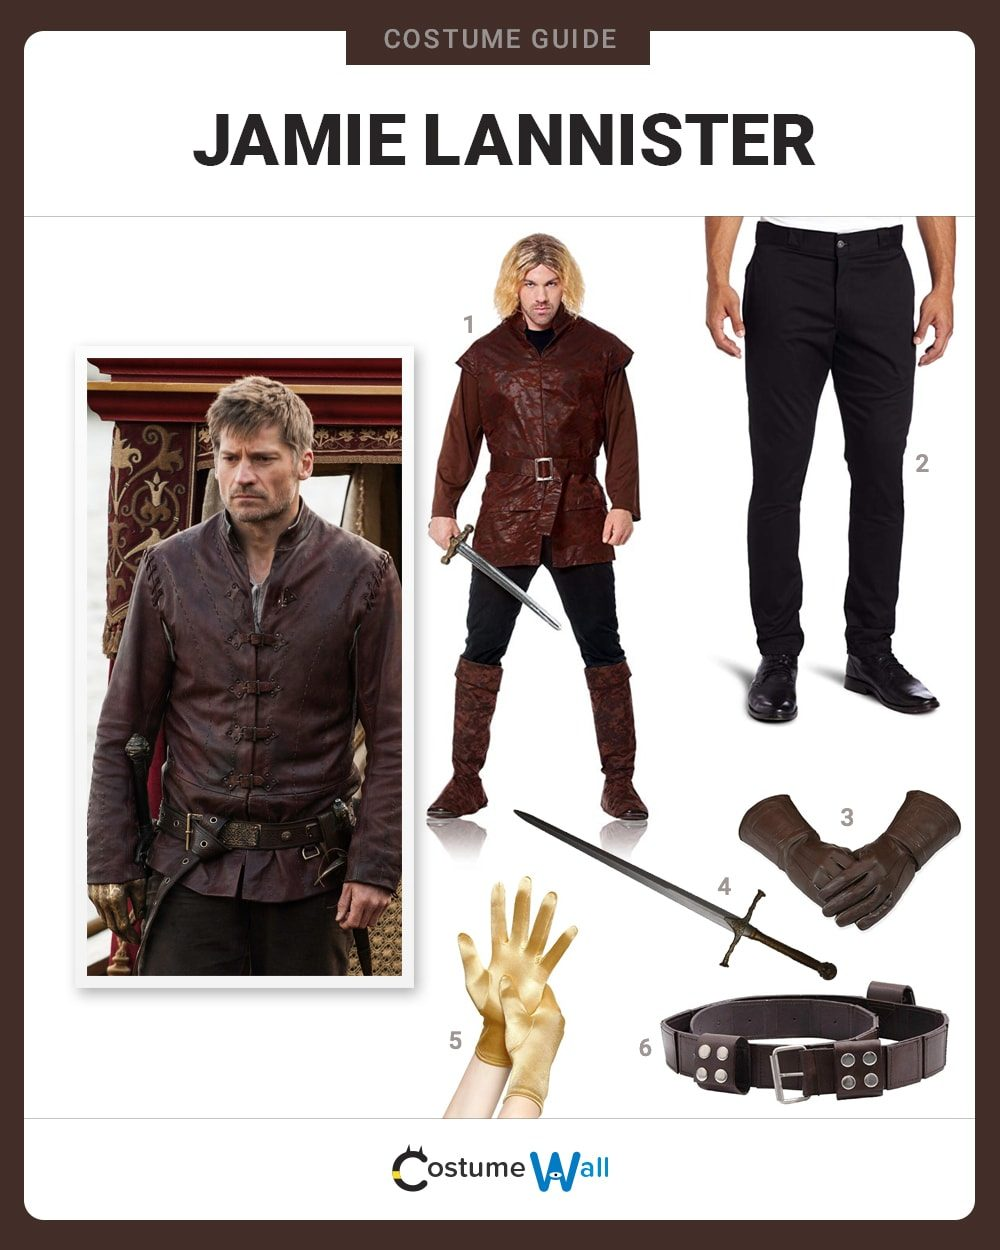 Jamie Lannister Costume Guide